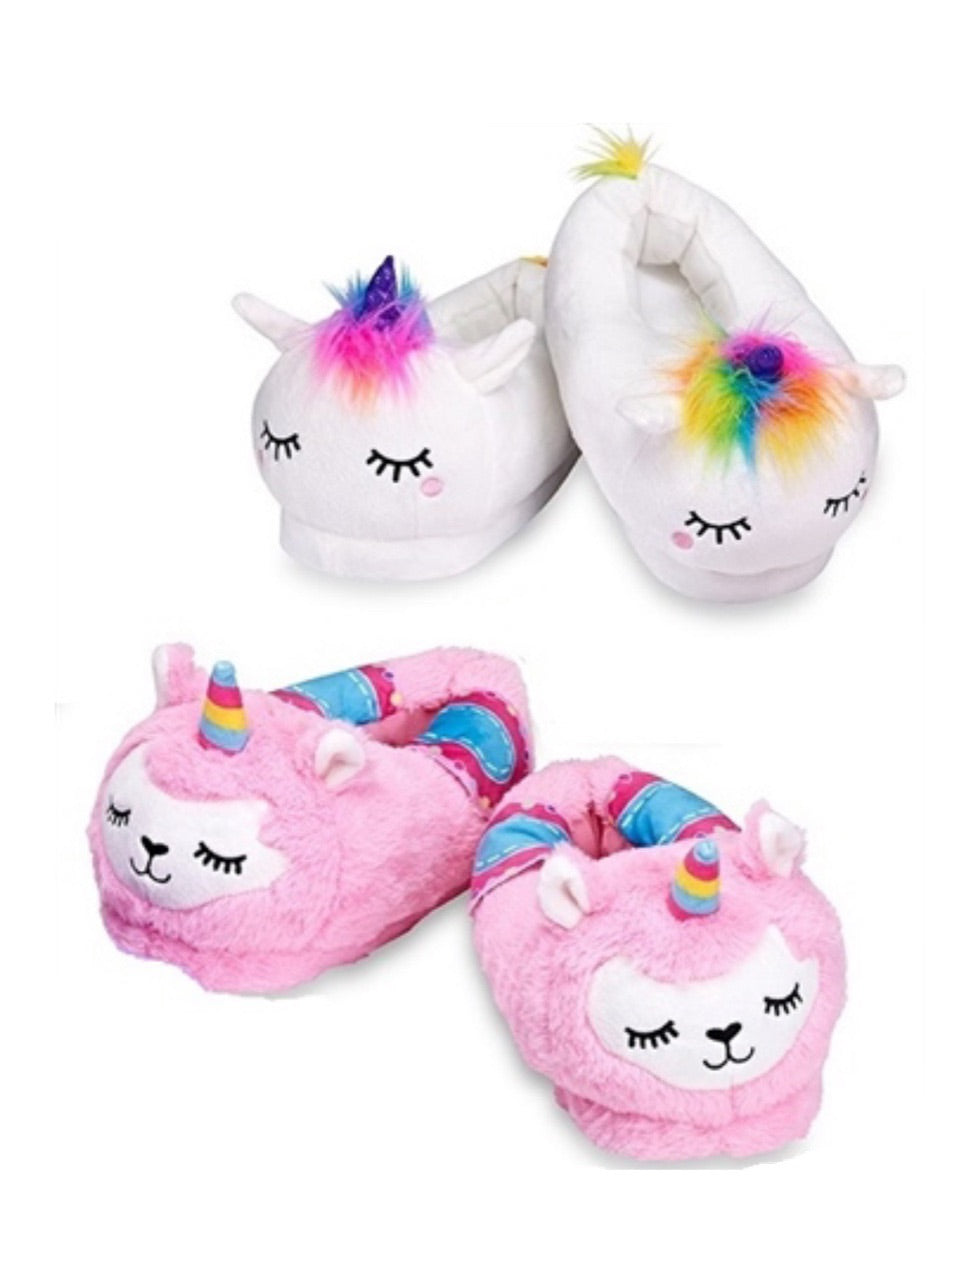 Fuzzy Fantasy Slippers - Ages 5-9